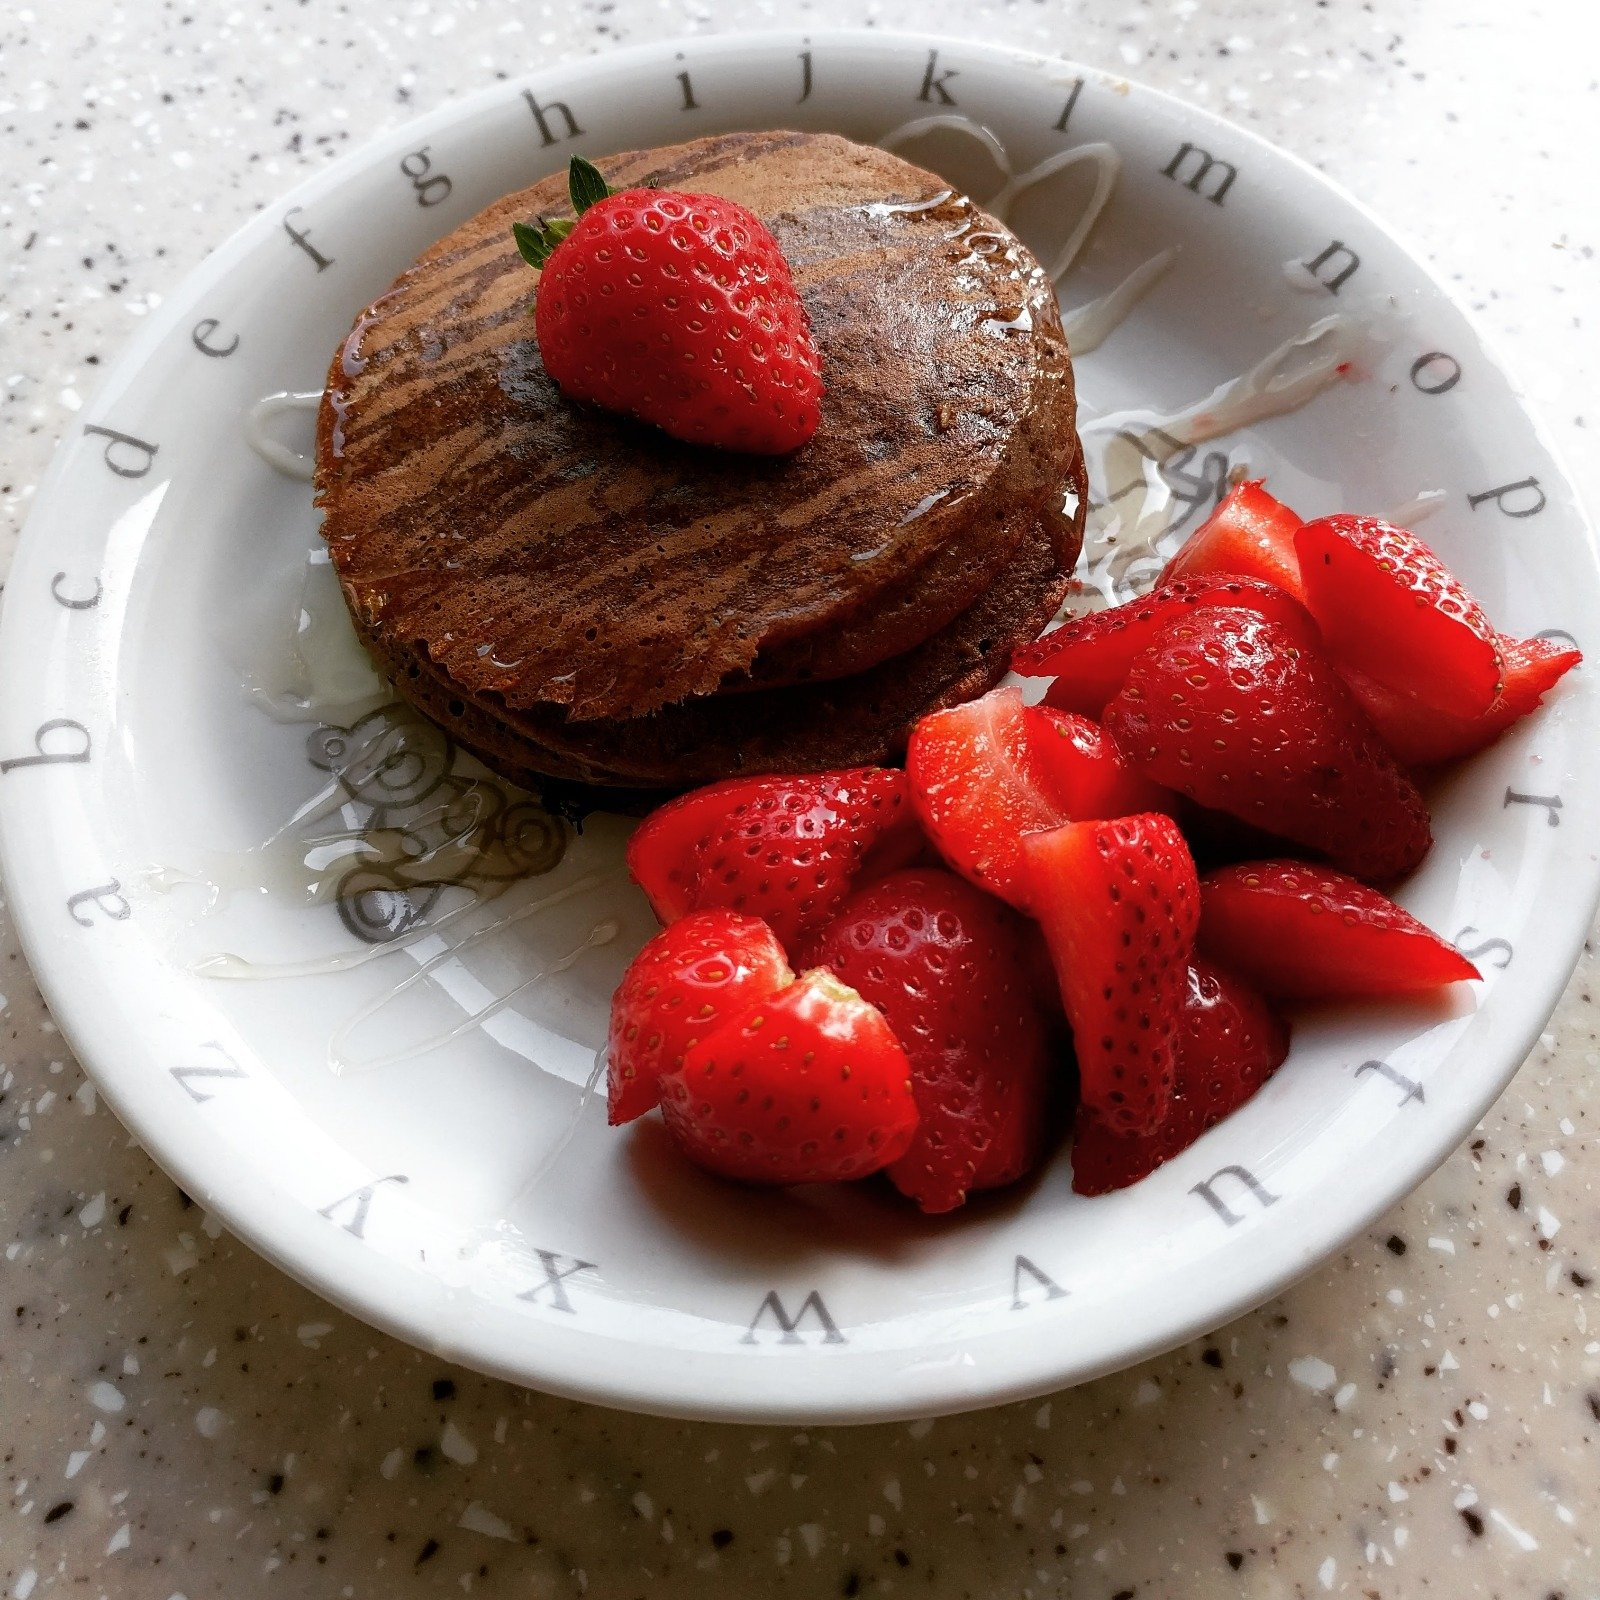 Pancakes and strawberries in a bowl